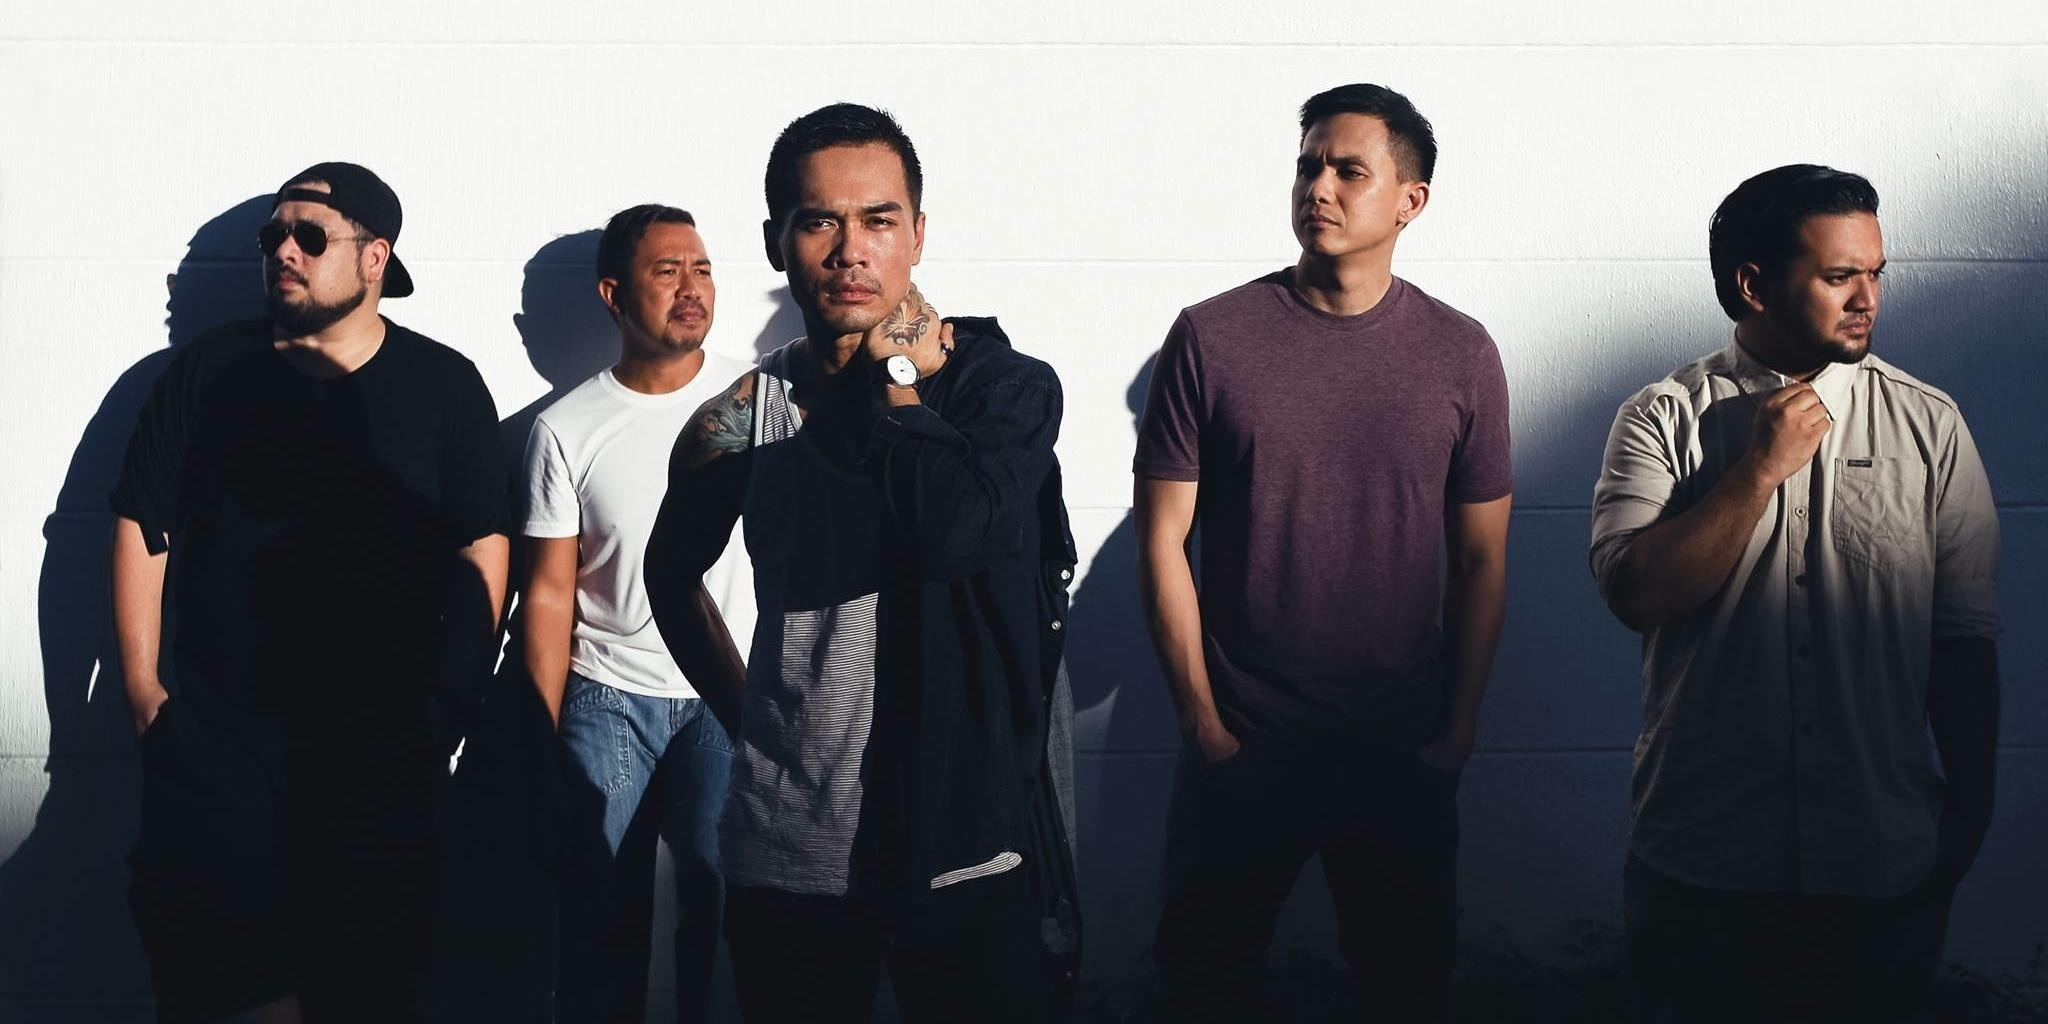 Filipino rock band Kjwan to perform in Singapore